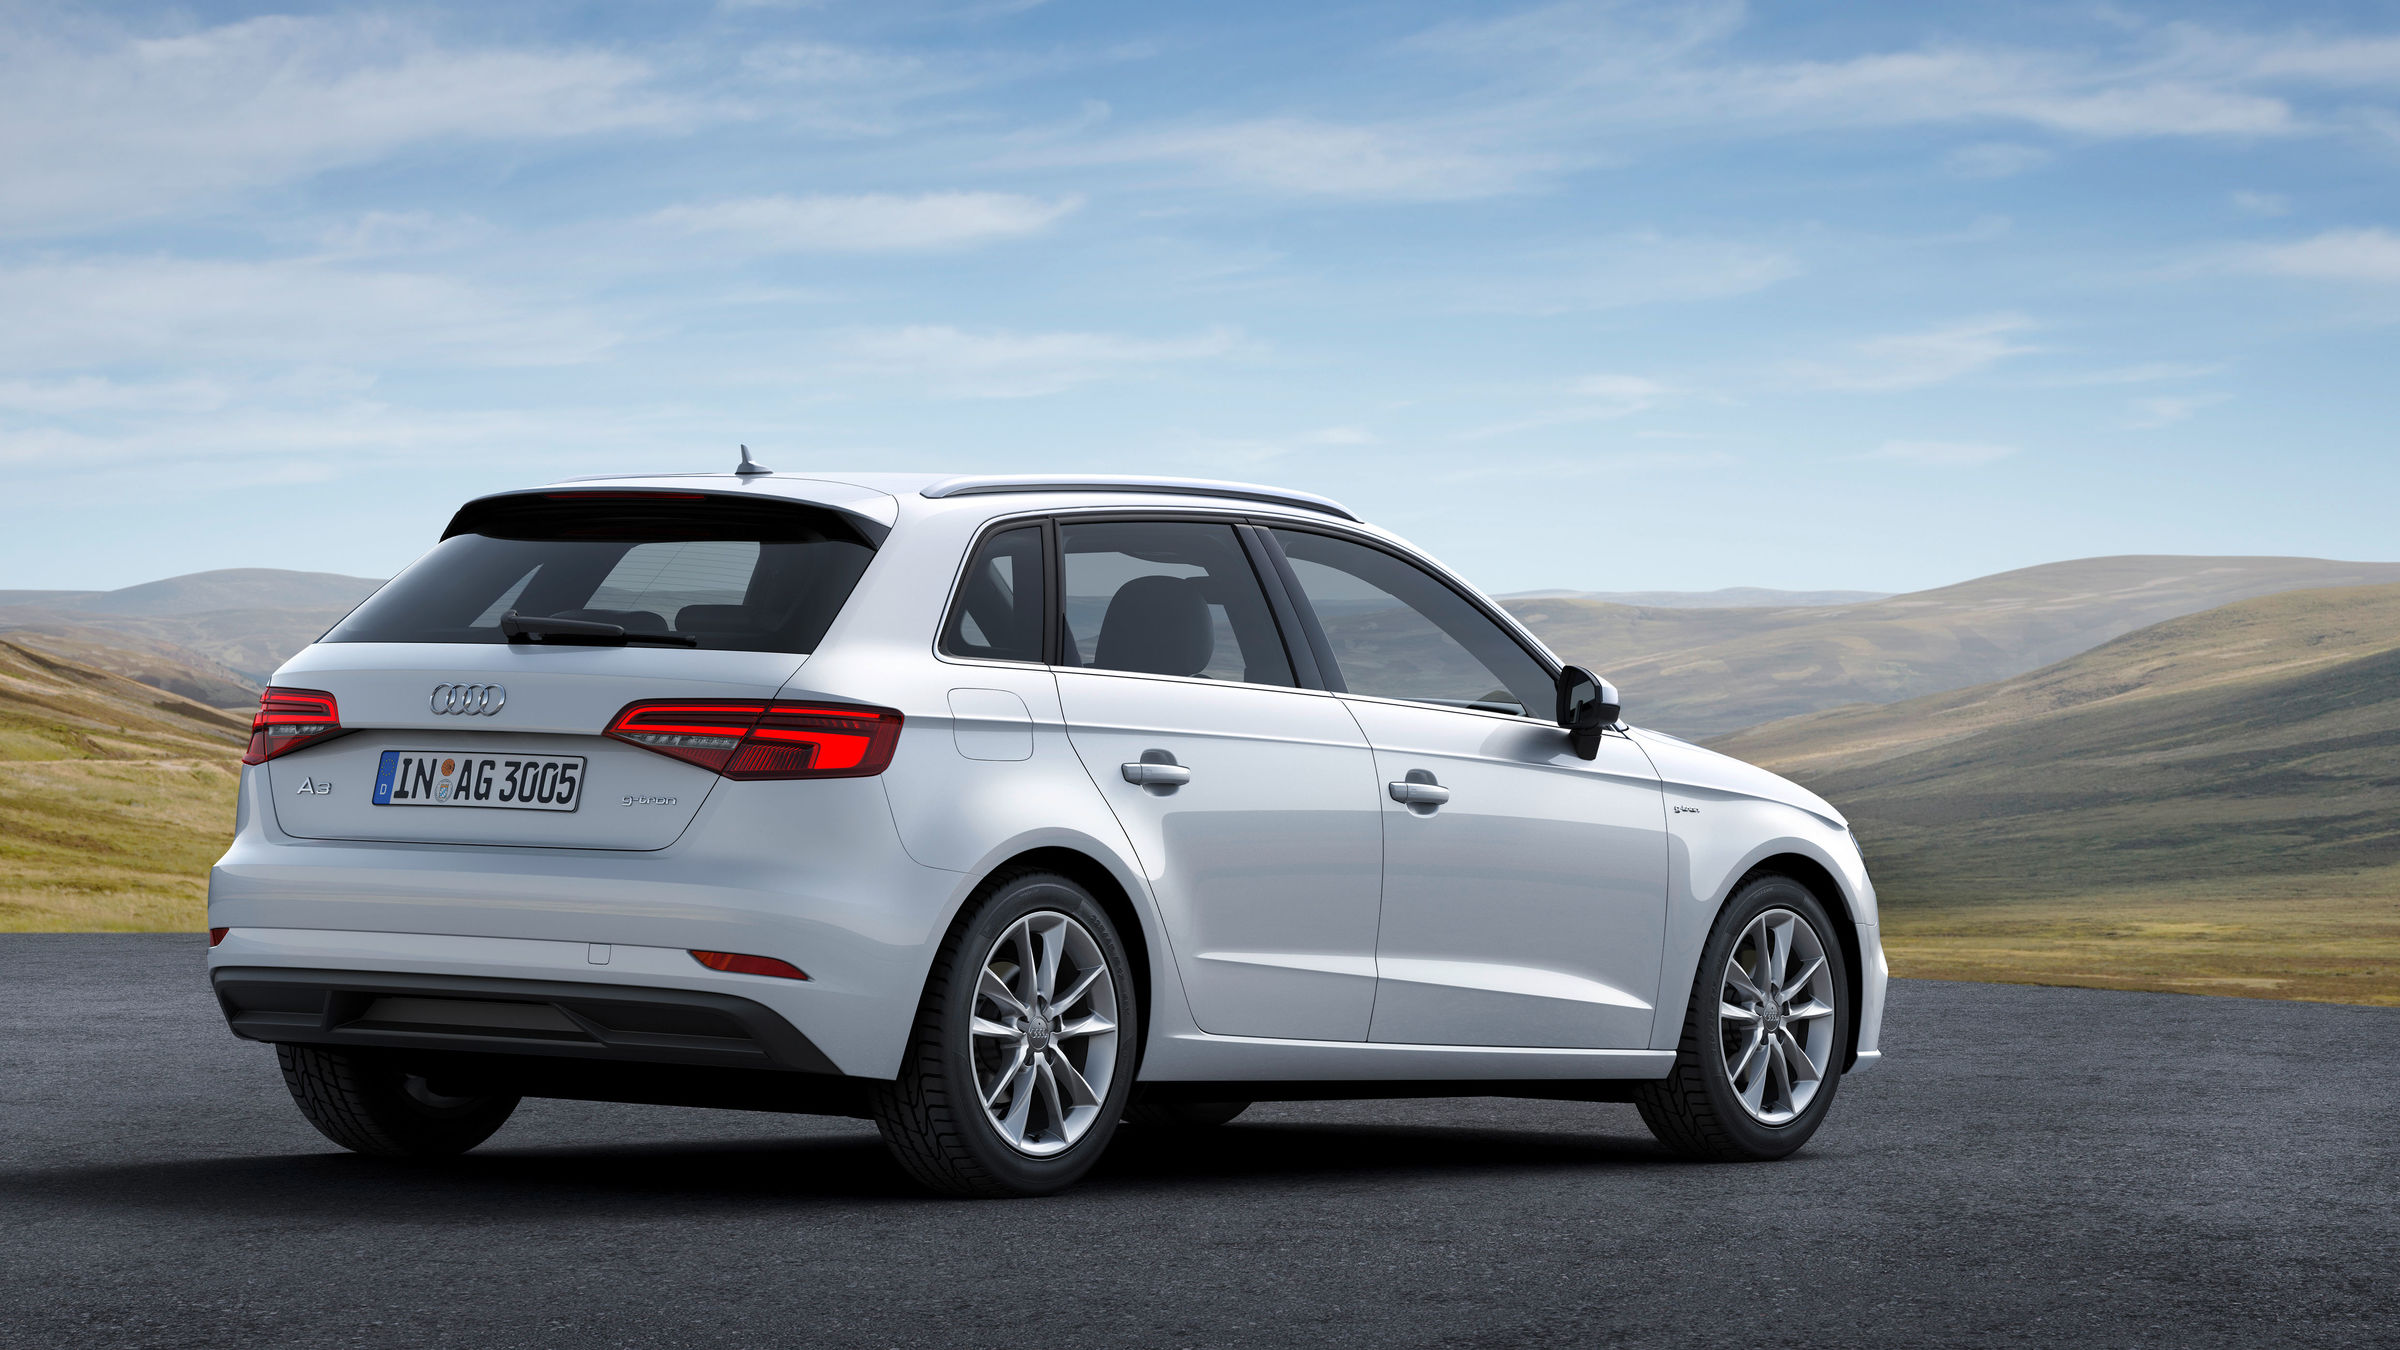 Audi A3 Sportback g-tron: Starting the New Model Year with a Longer